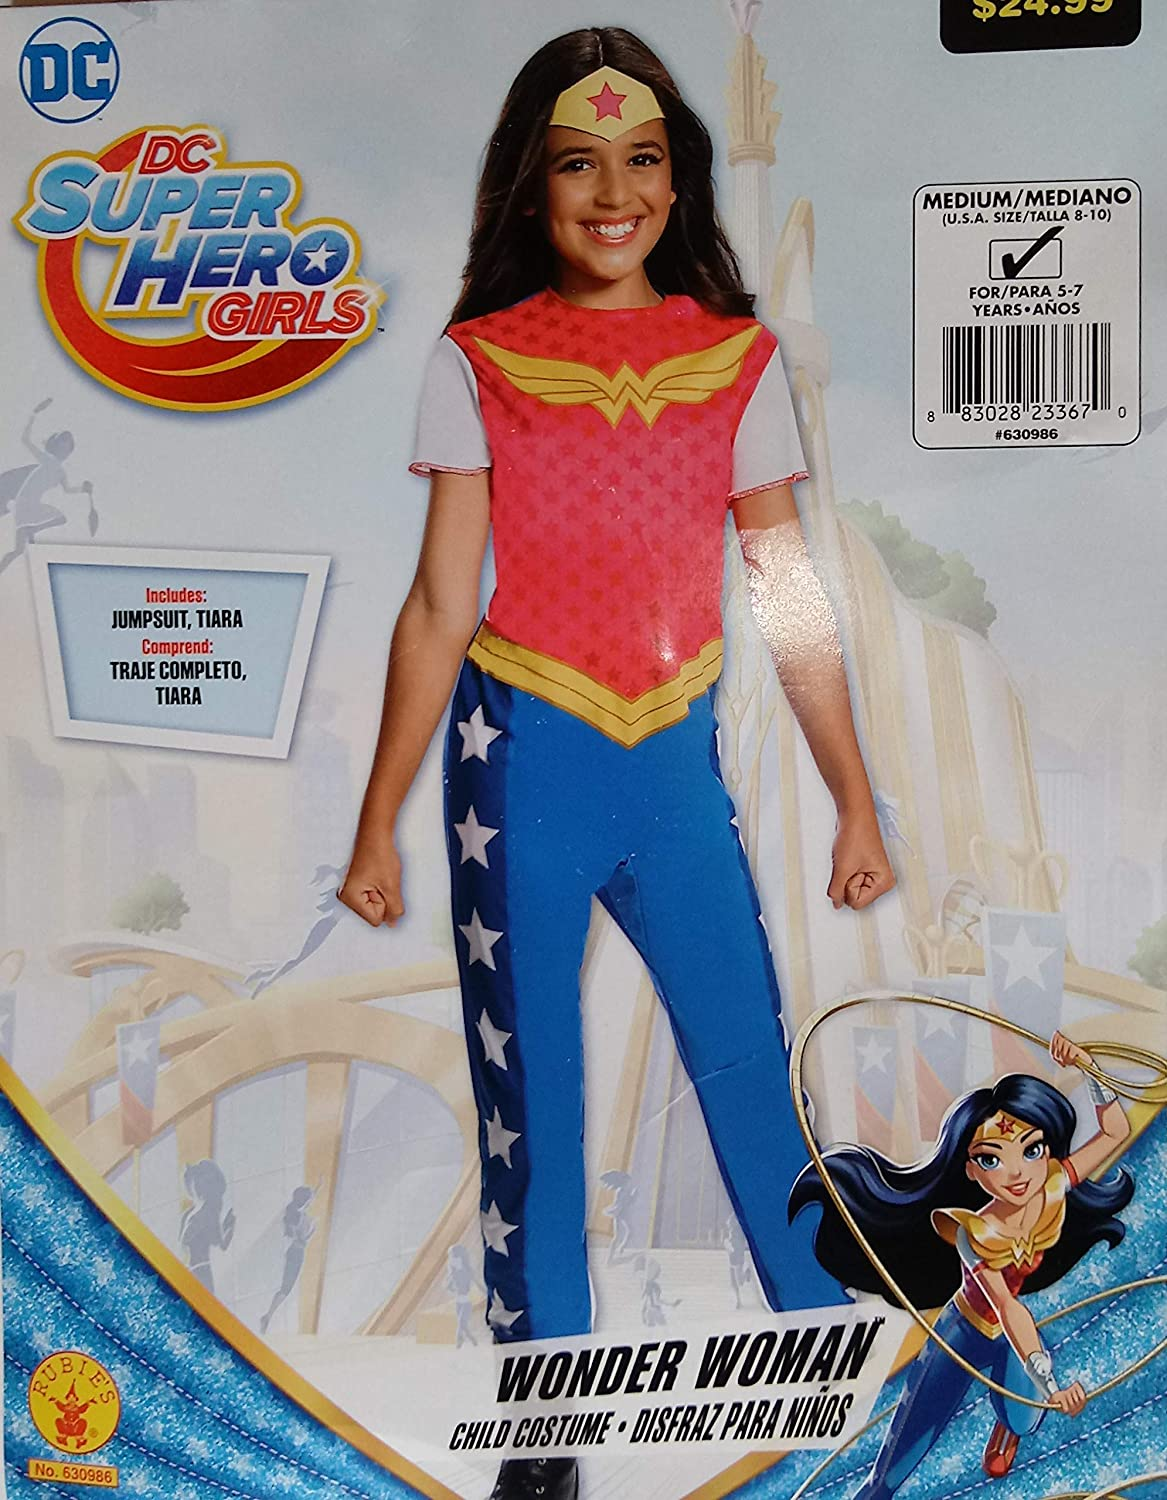 Amazon.com: DC Super Hero Girls Wonder Woman Costume Medium ...